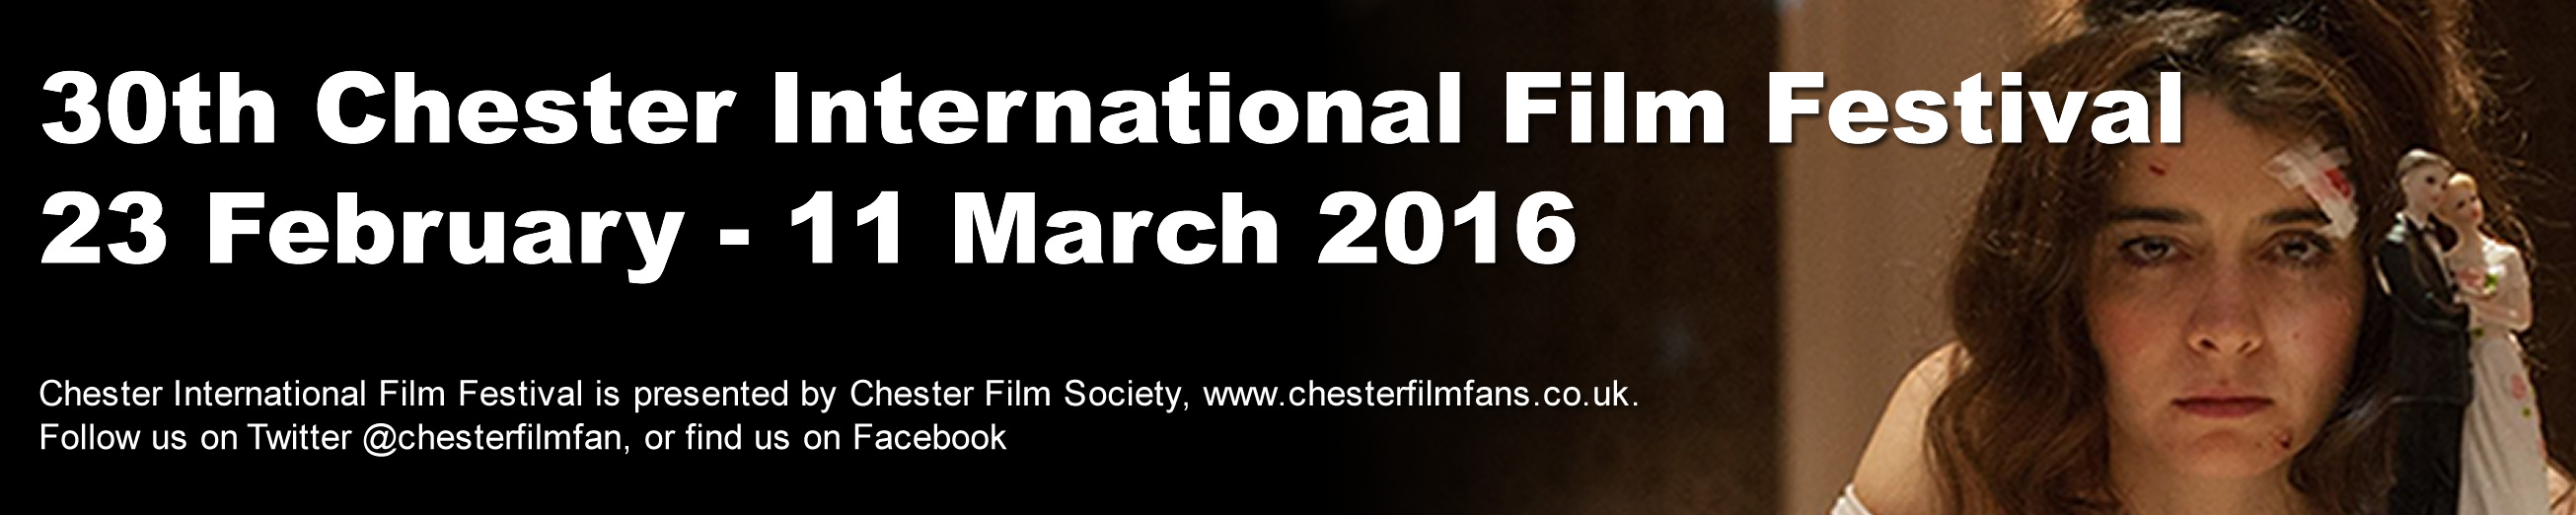 Chester International Film Festival 2016